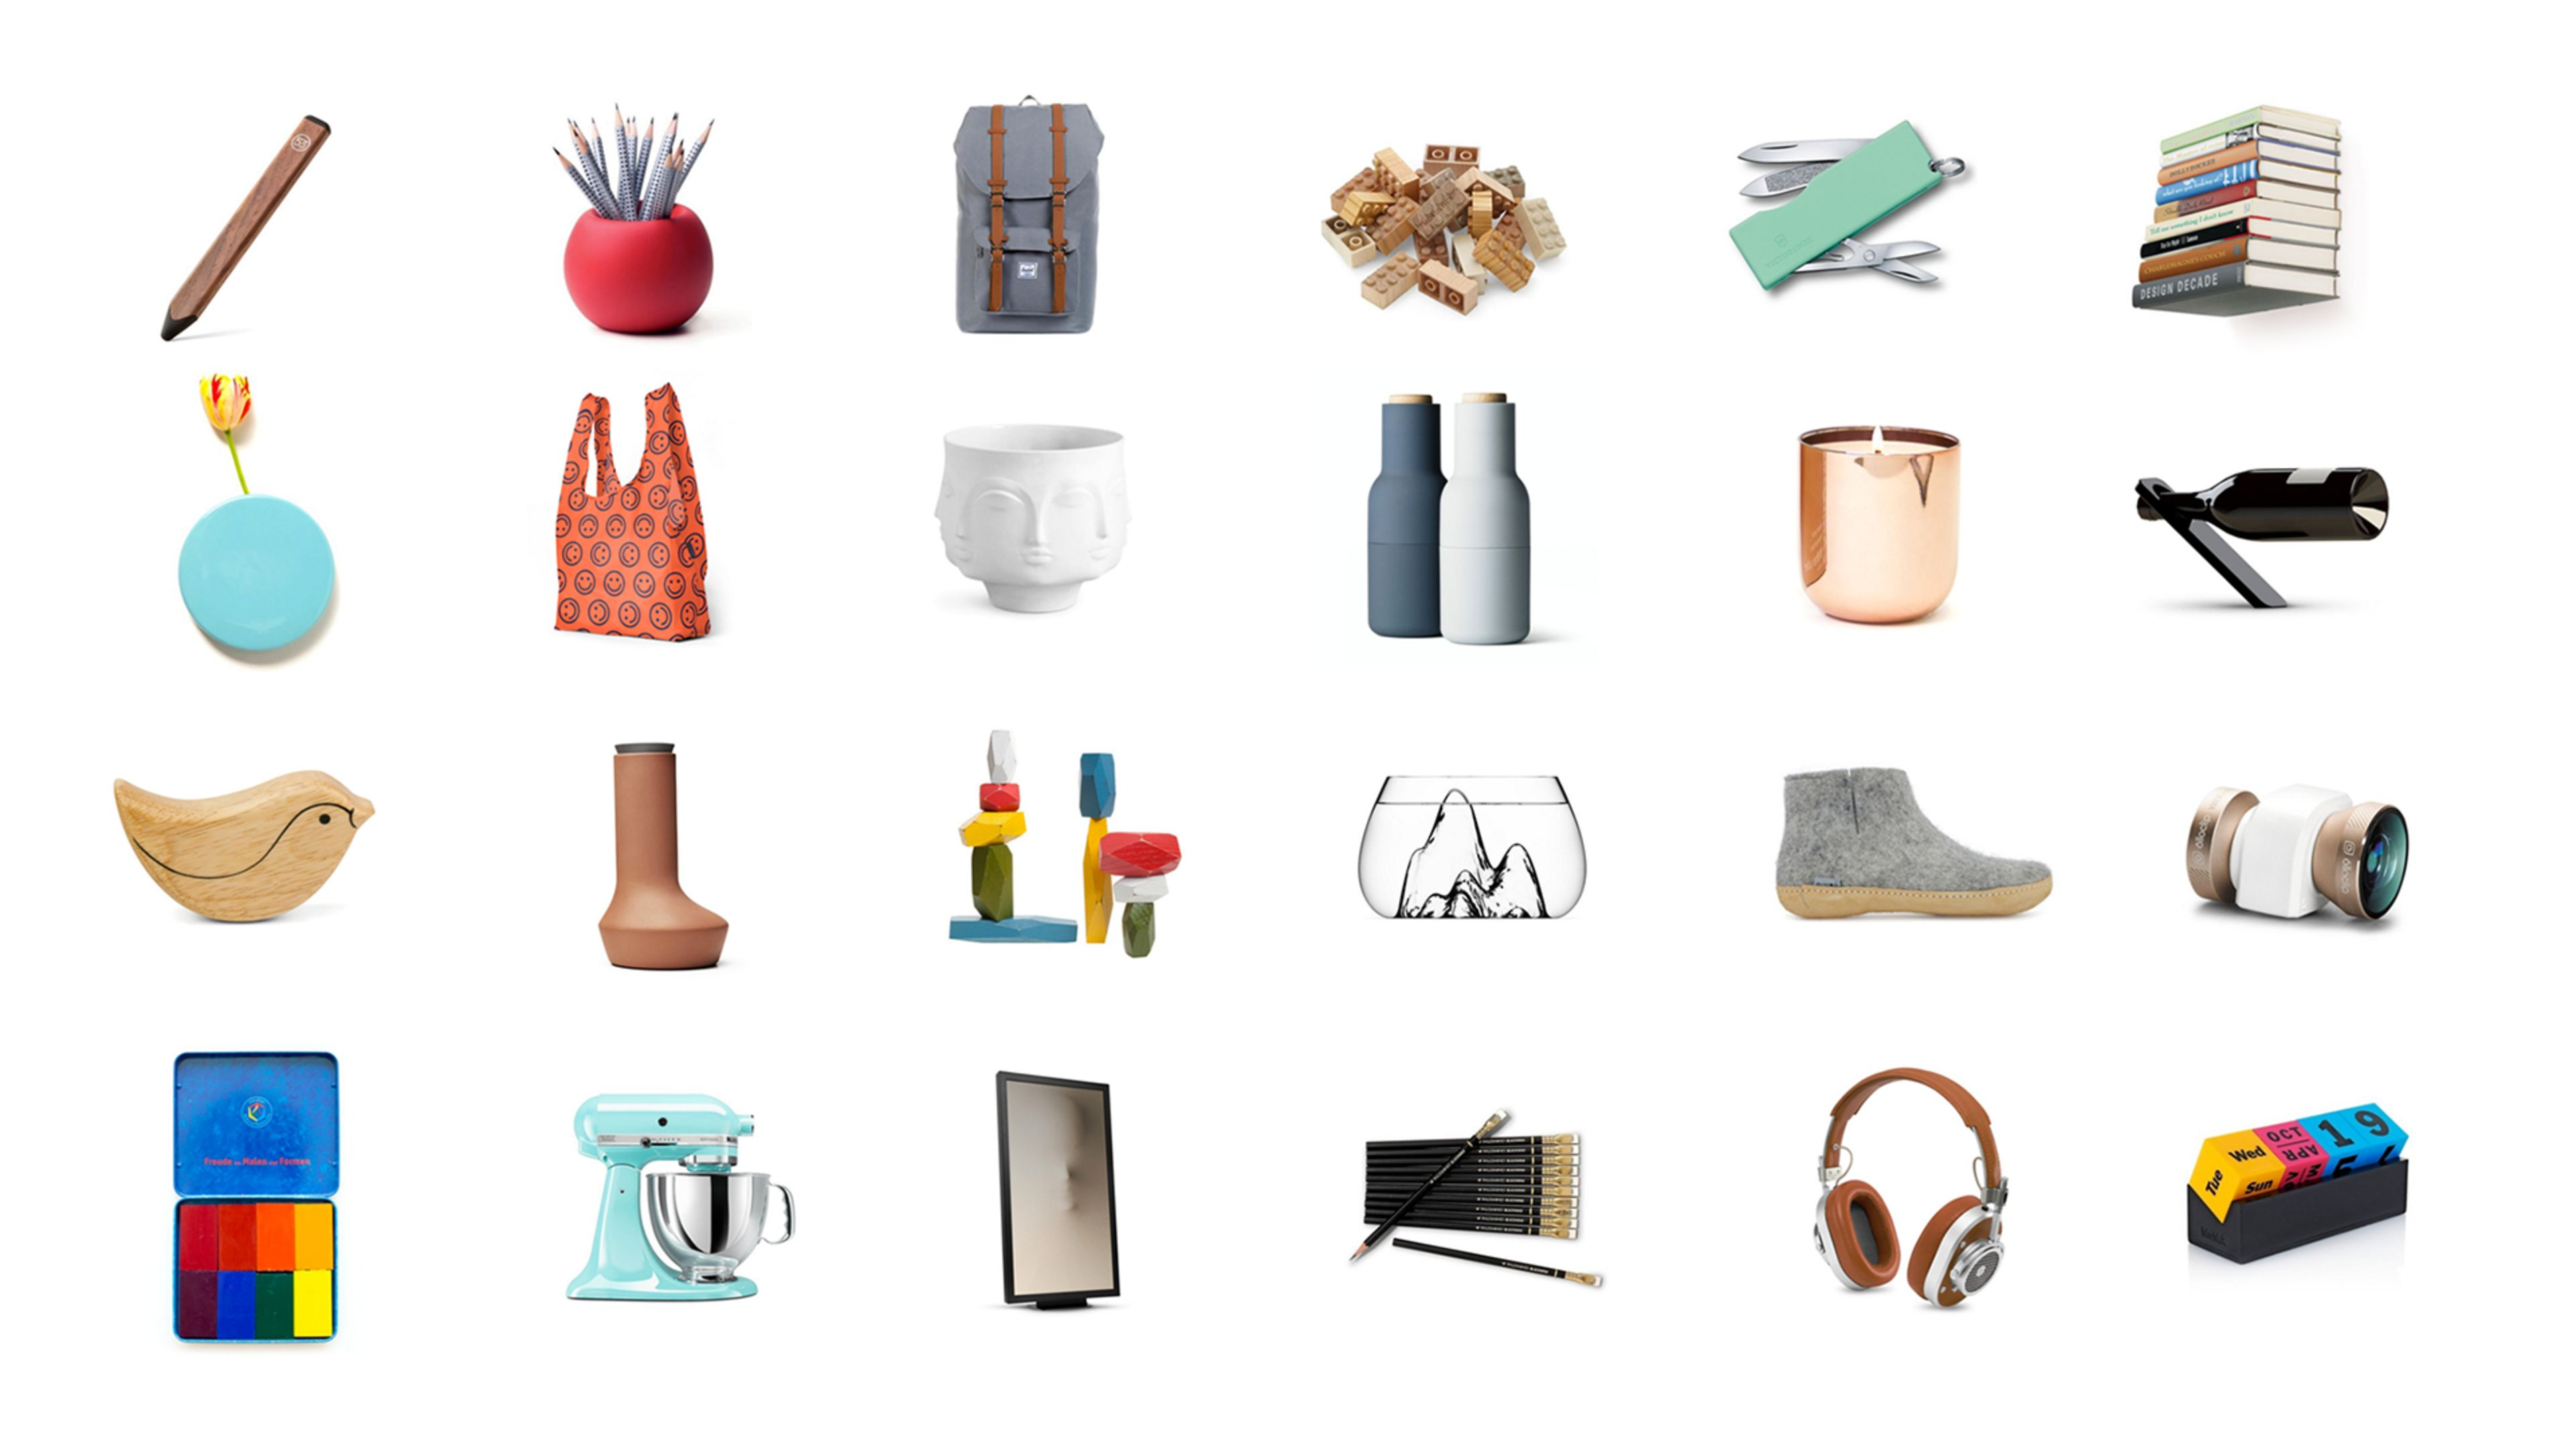 A grid of Canopy's most popular products on clean white space. There's a good variety between inexpensive/expensive + electronics and physical object.